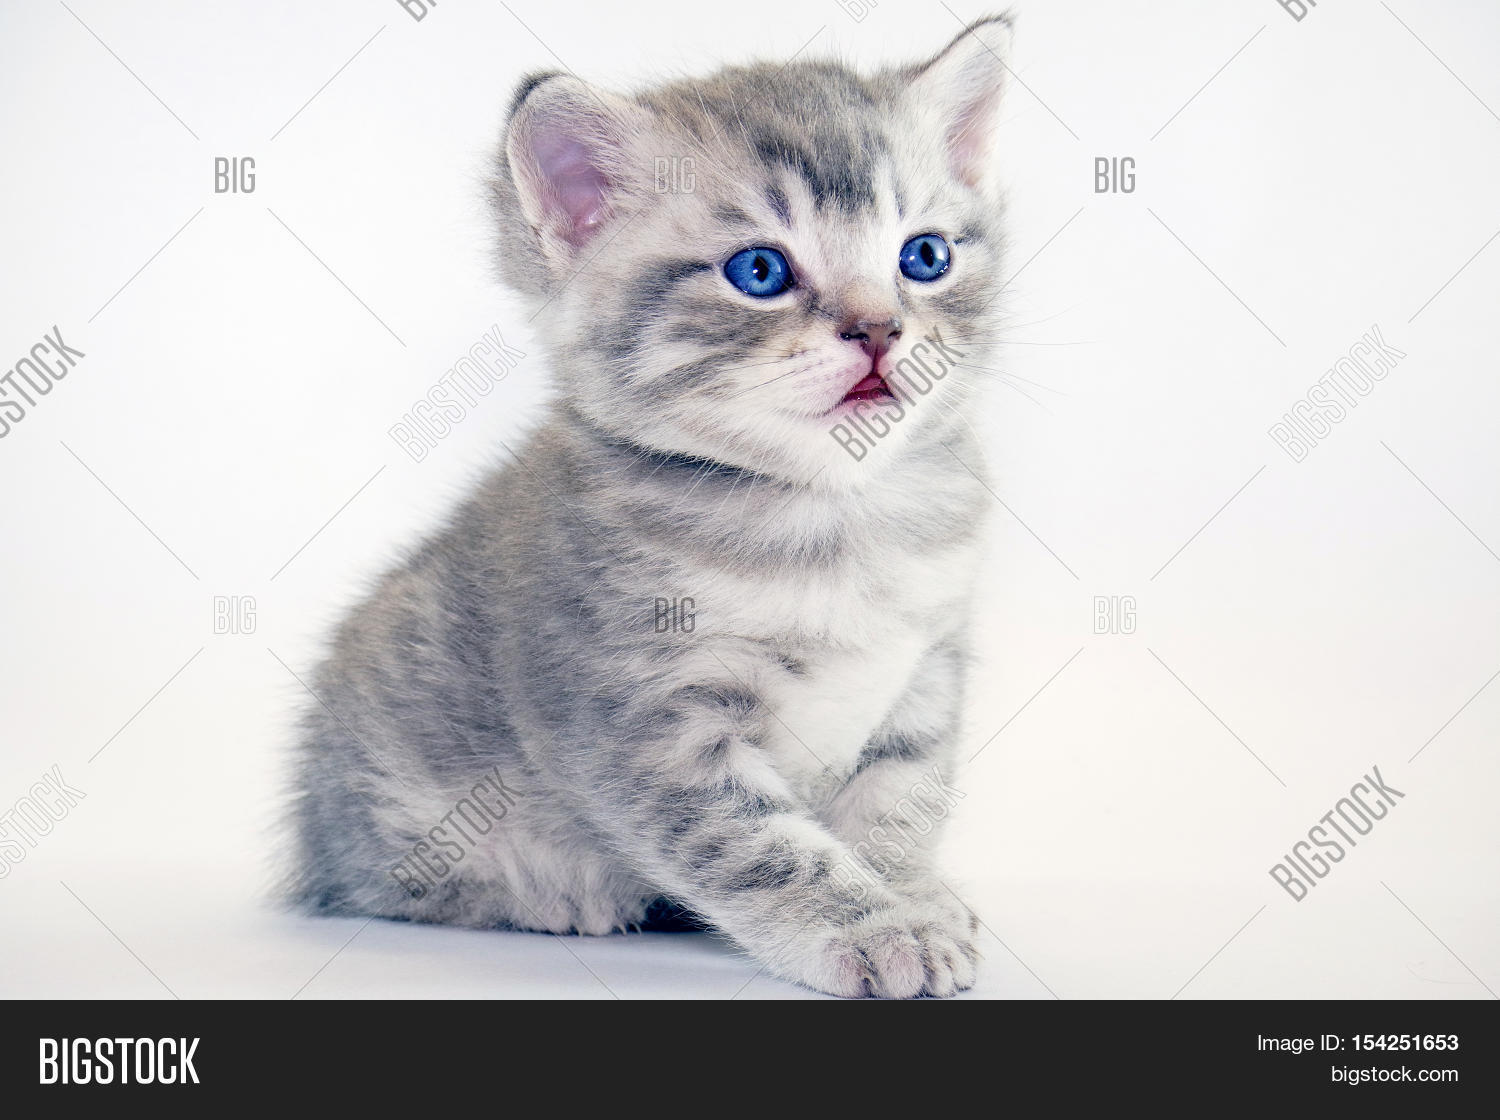 Cute American Shorthair Cat Kitten Image &